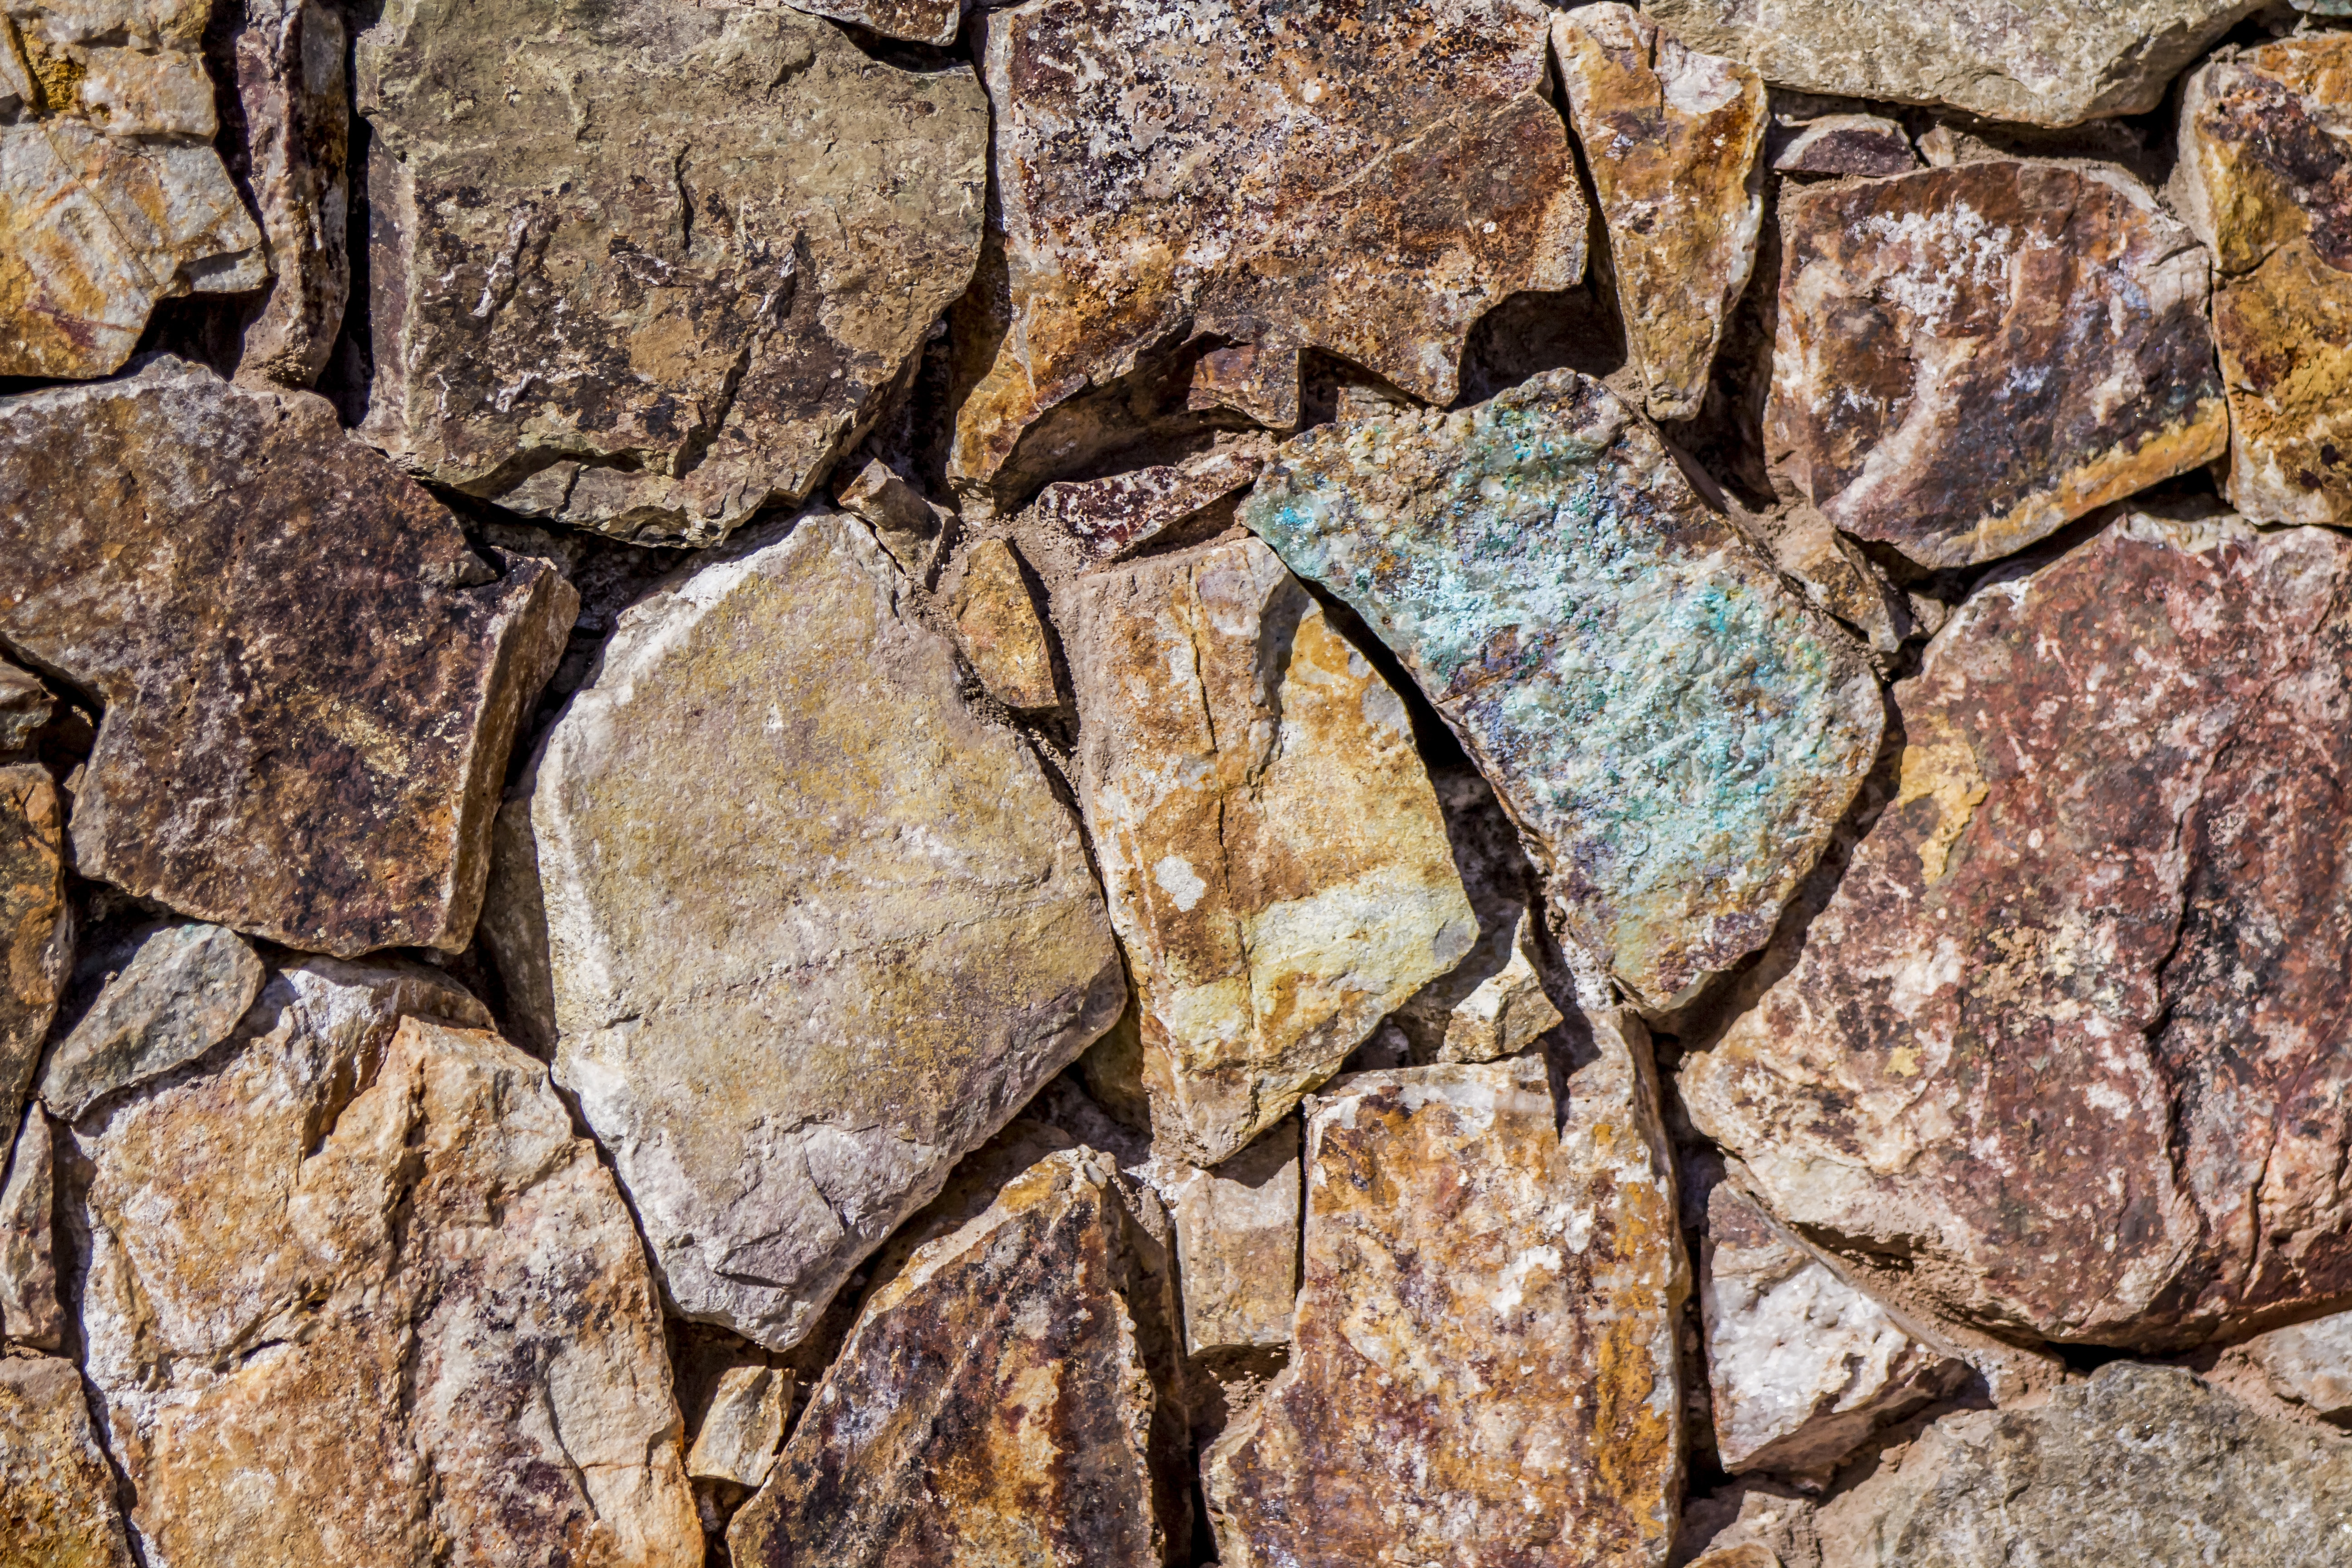 close up photo of assorted-colored piled rocks